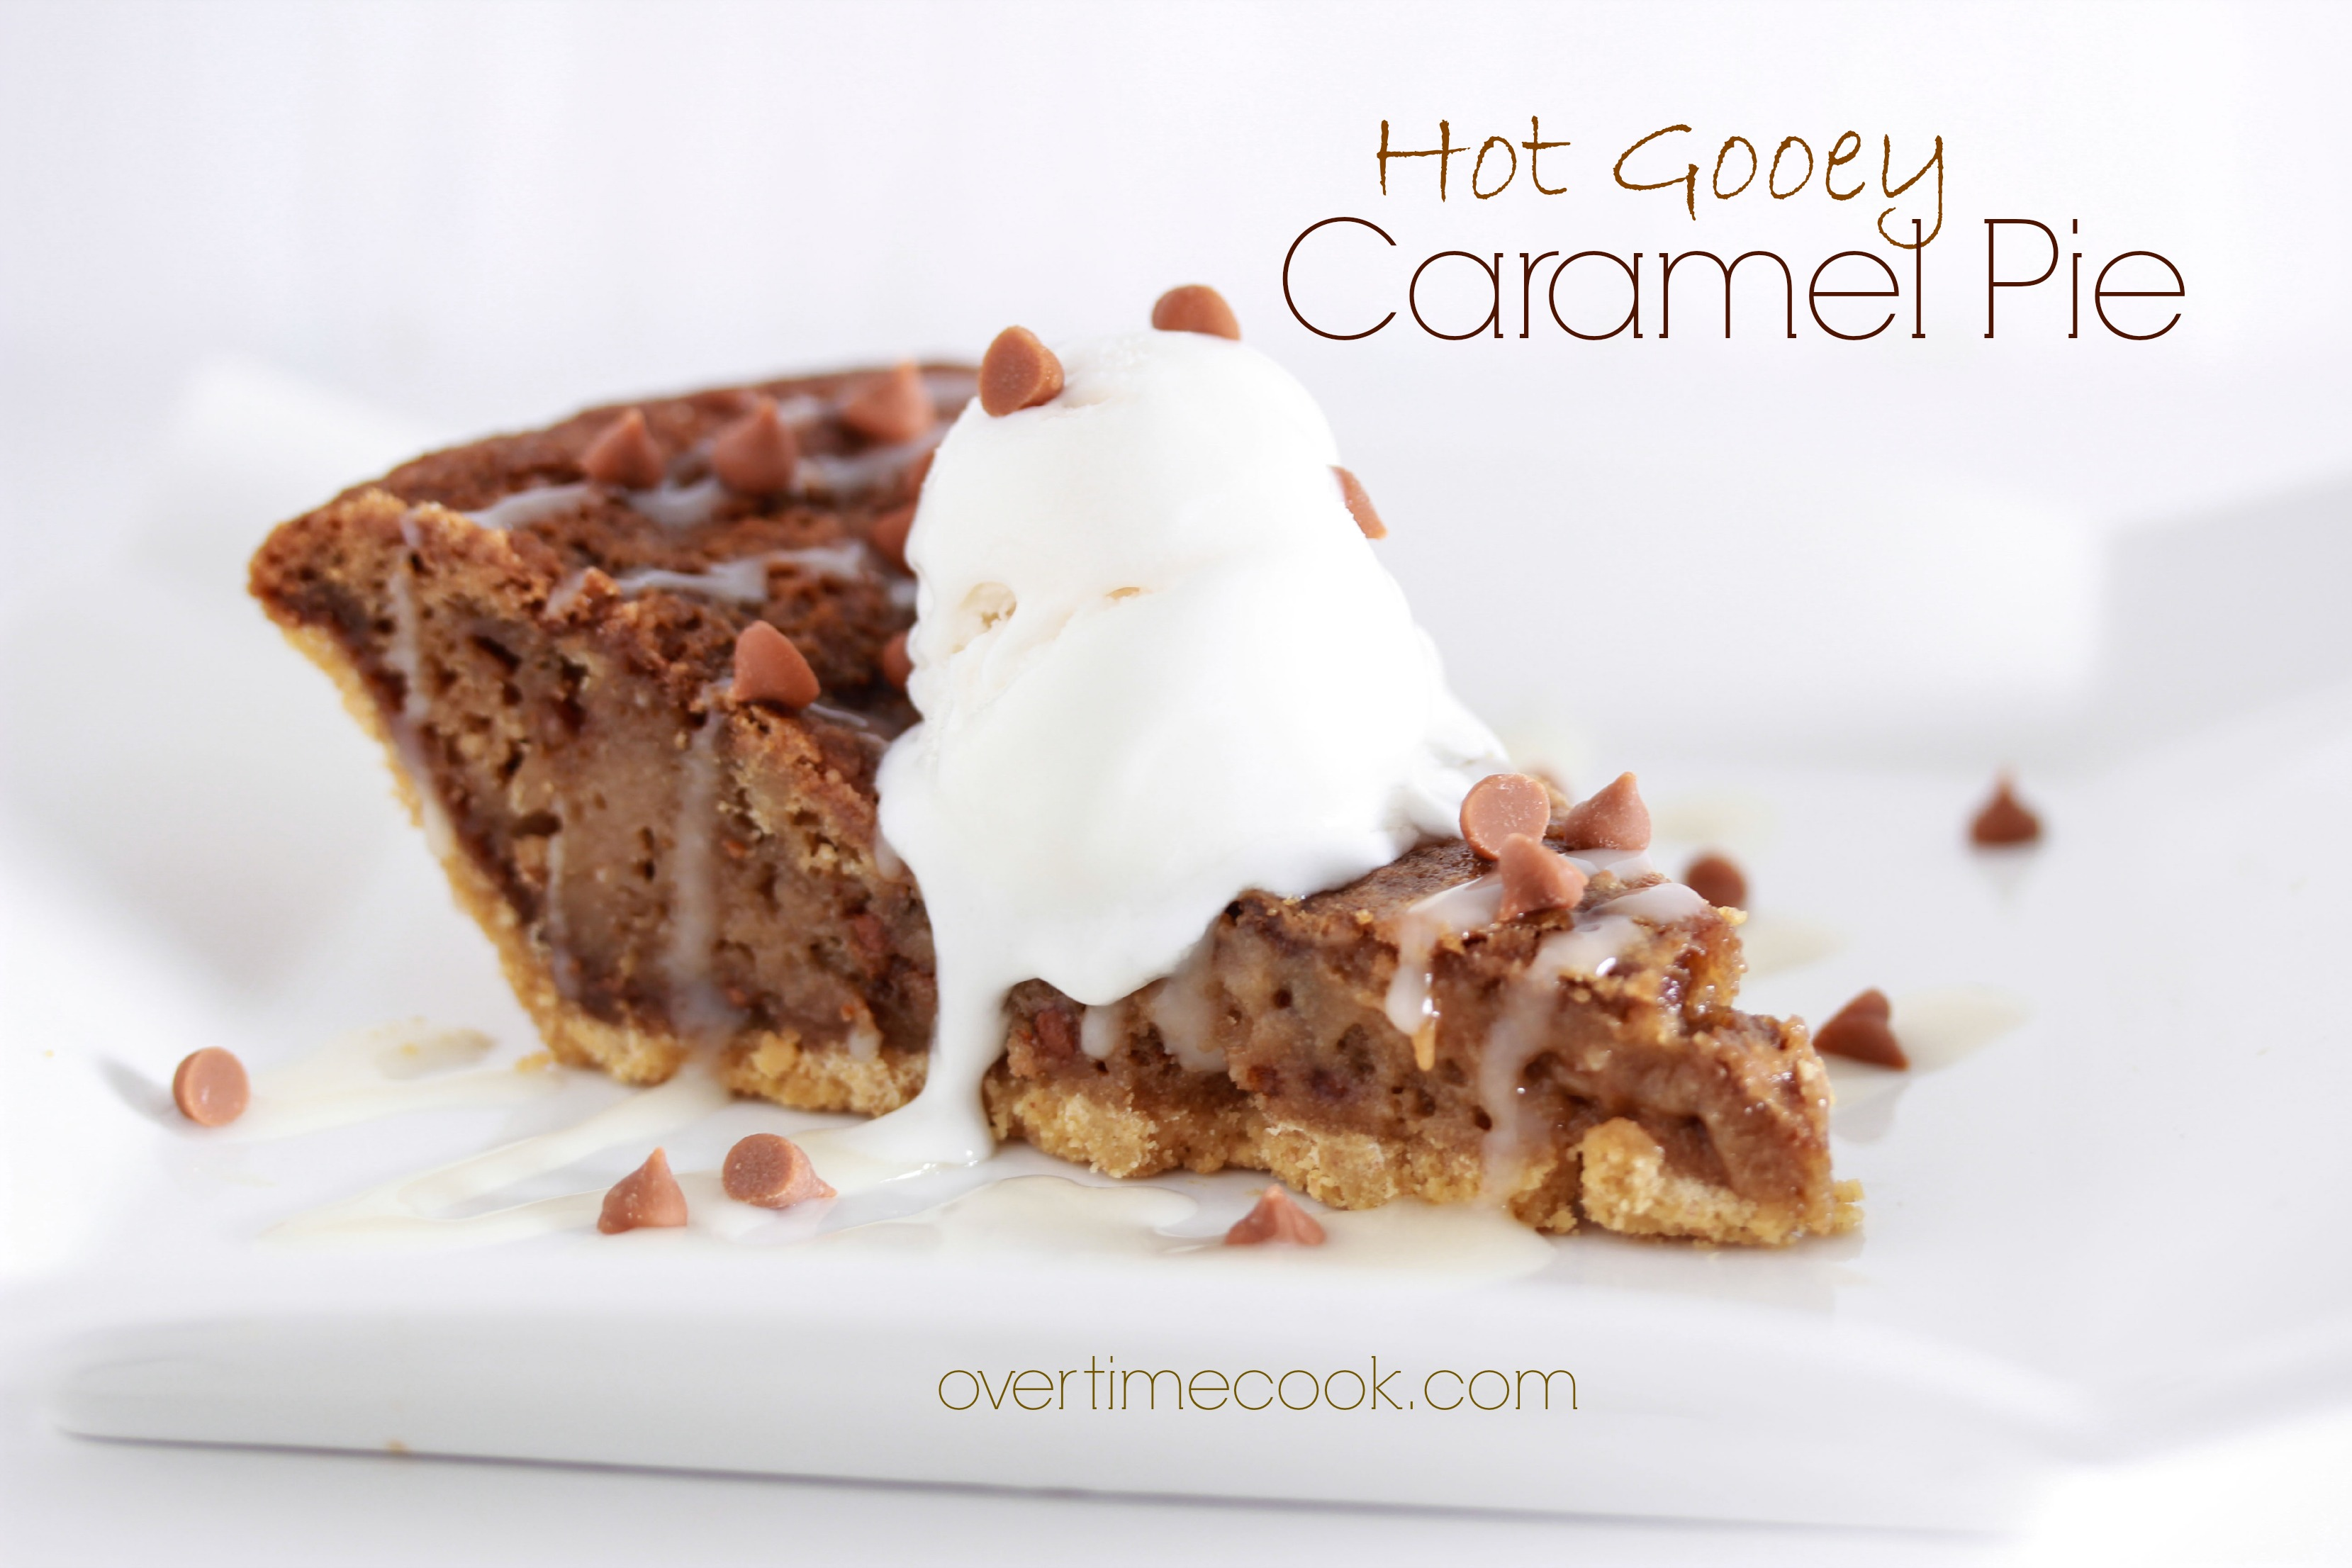 hot gooey caramel pie on overtimecook